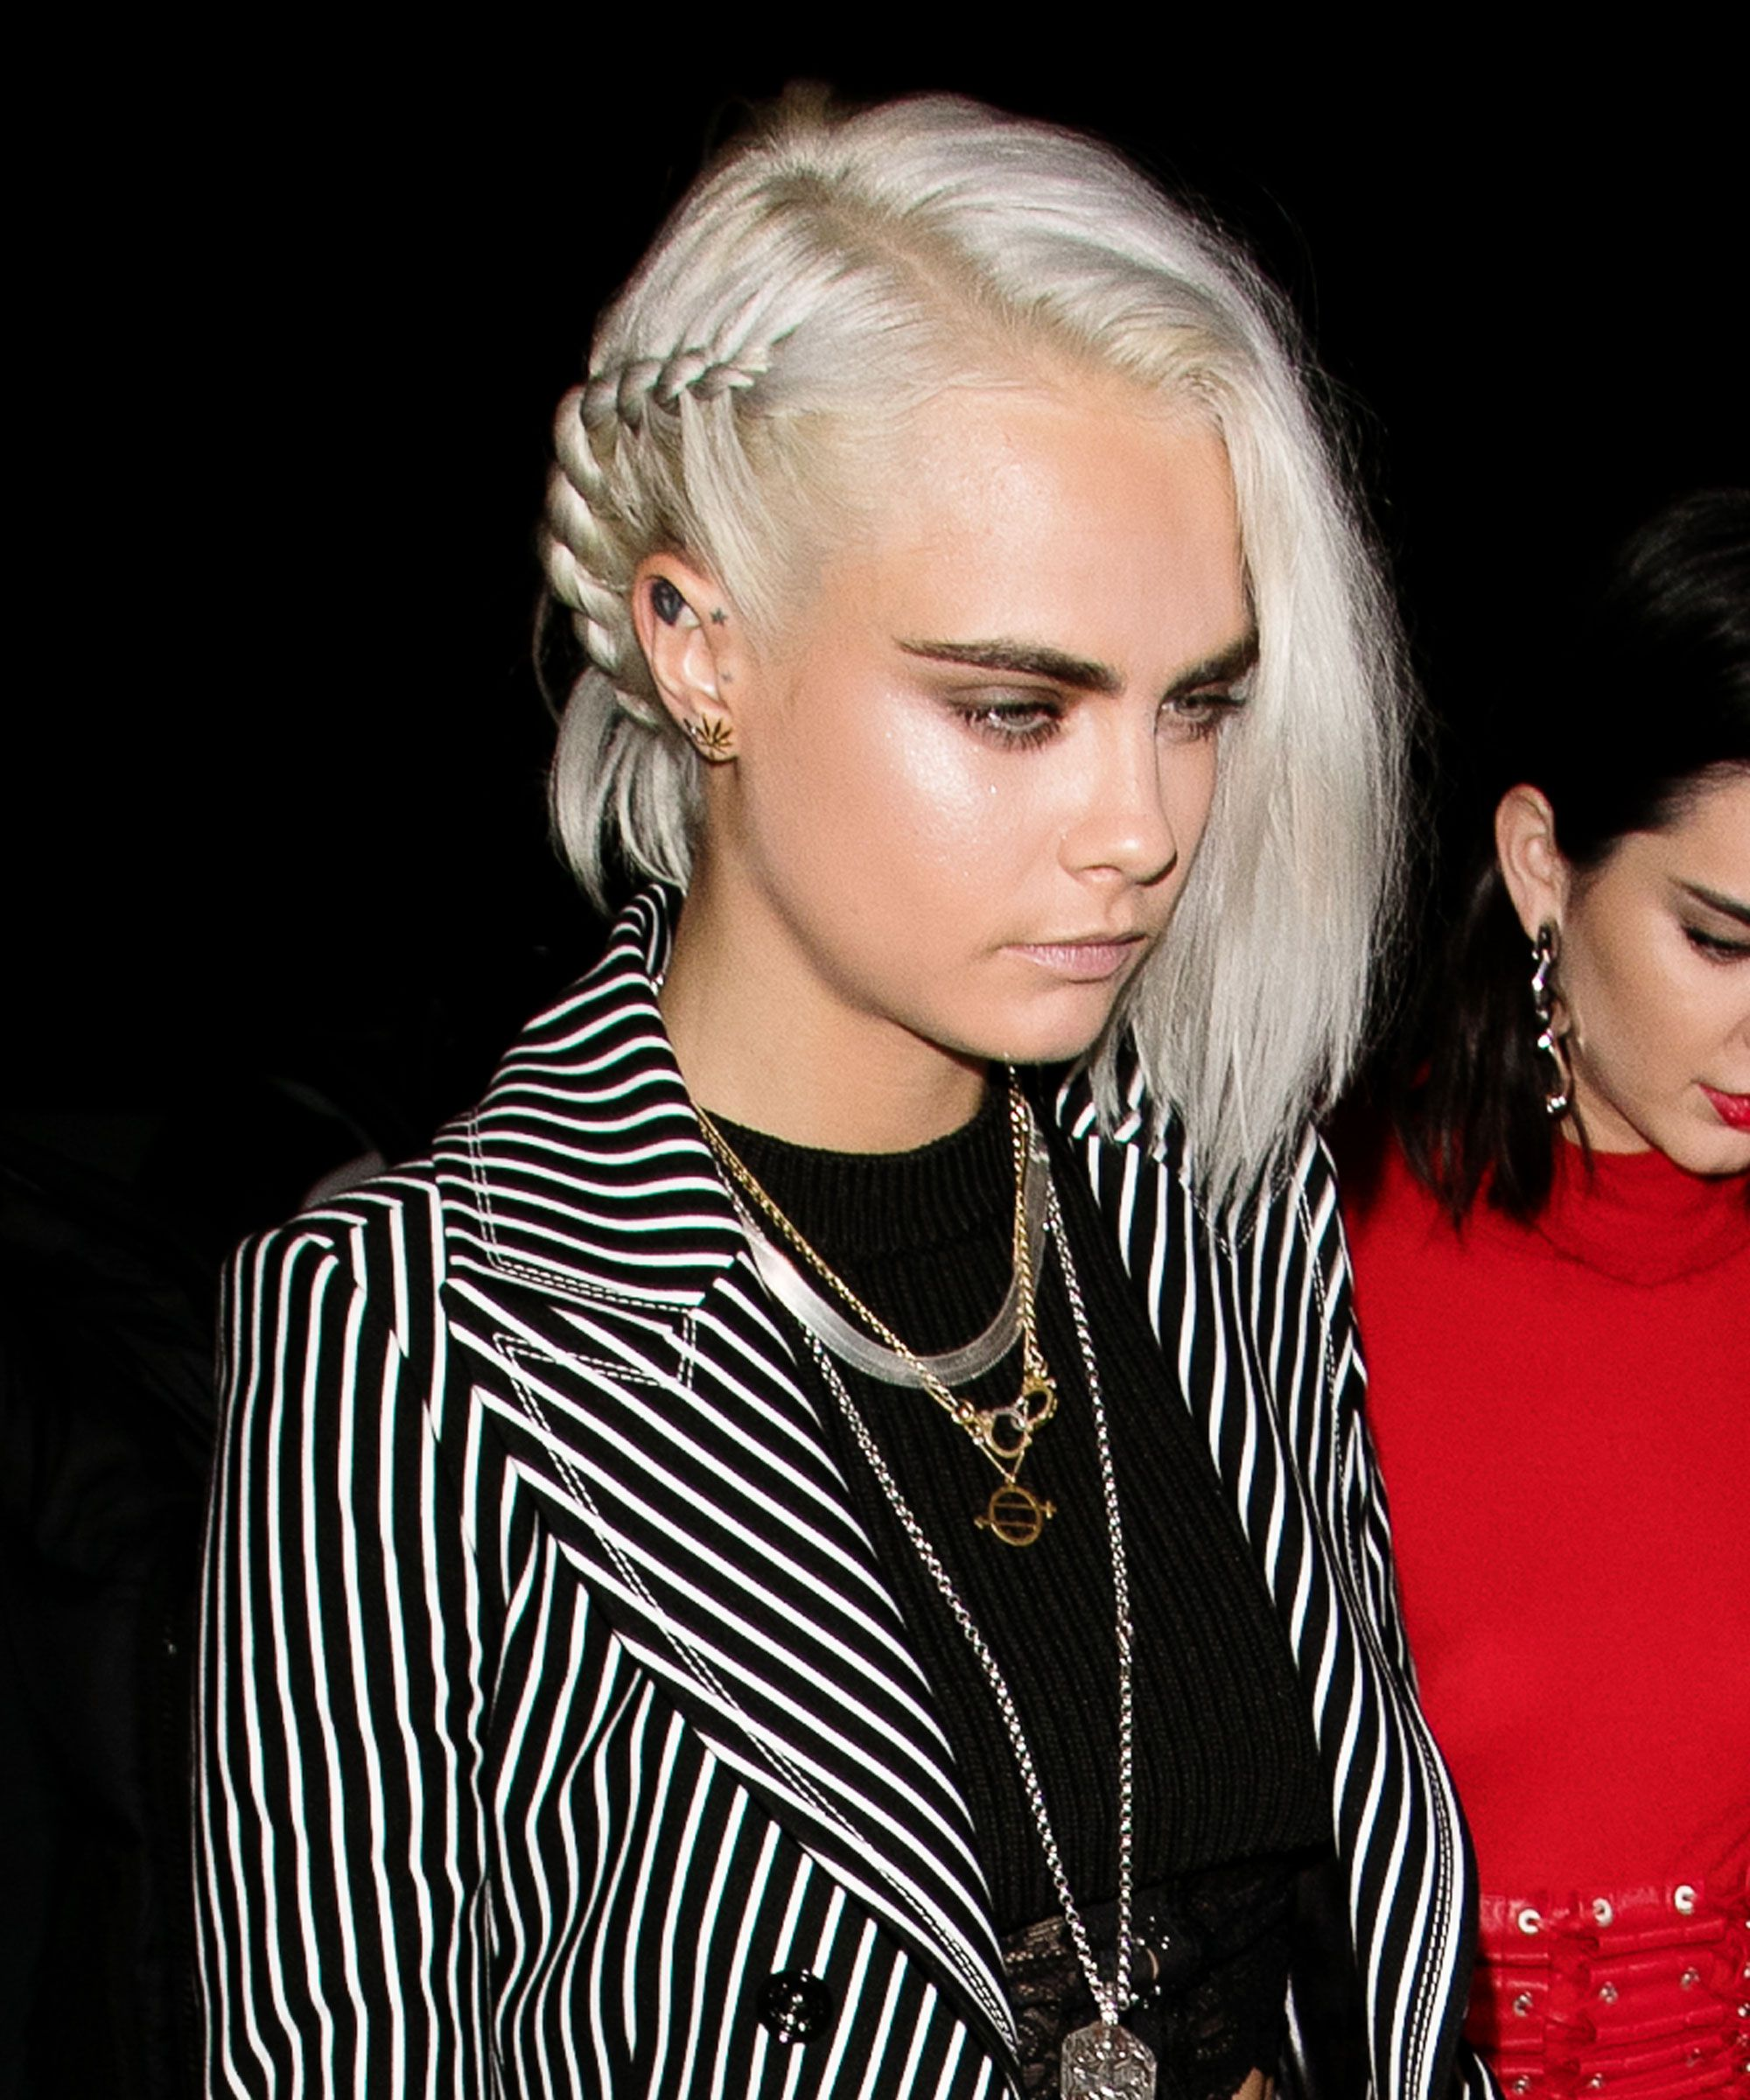 Cara Delevingne platinum blonde hair colors